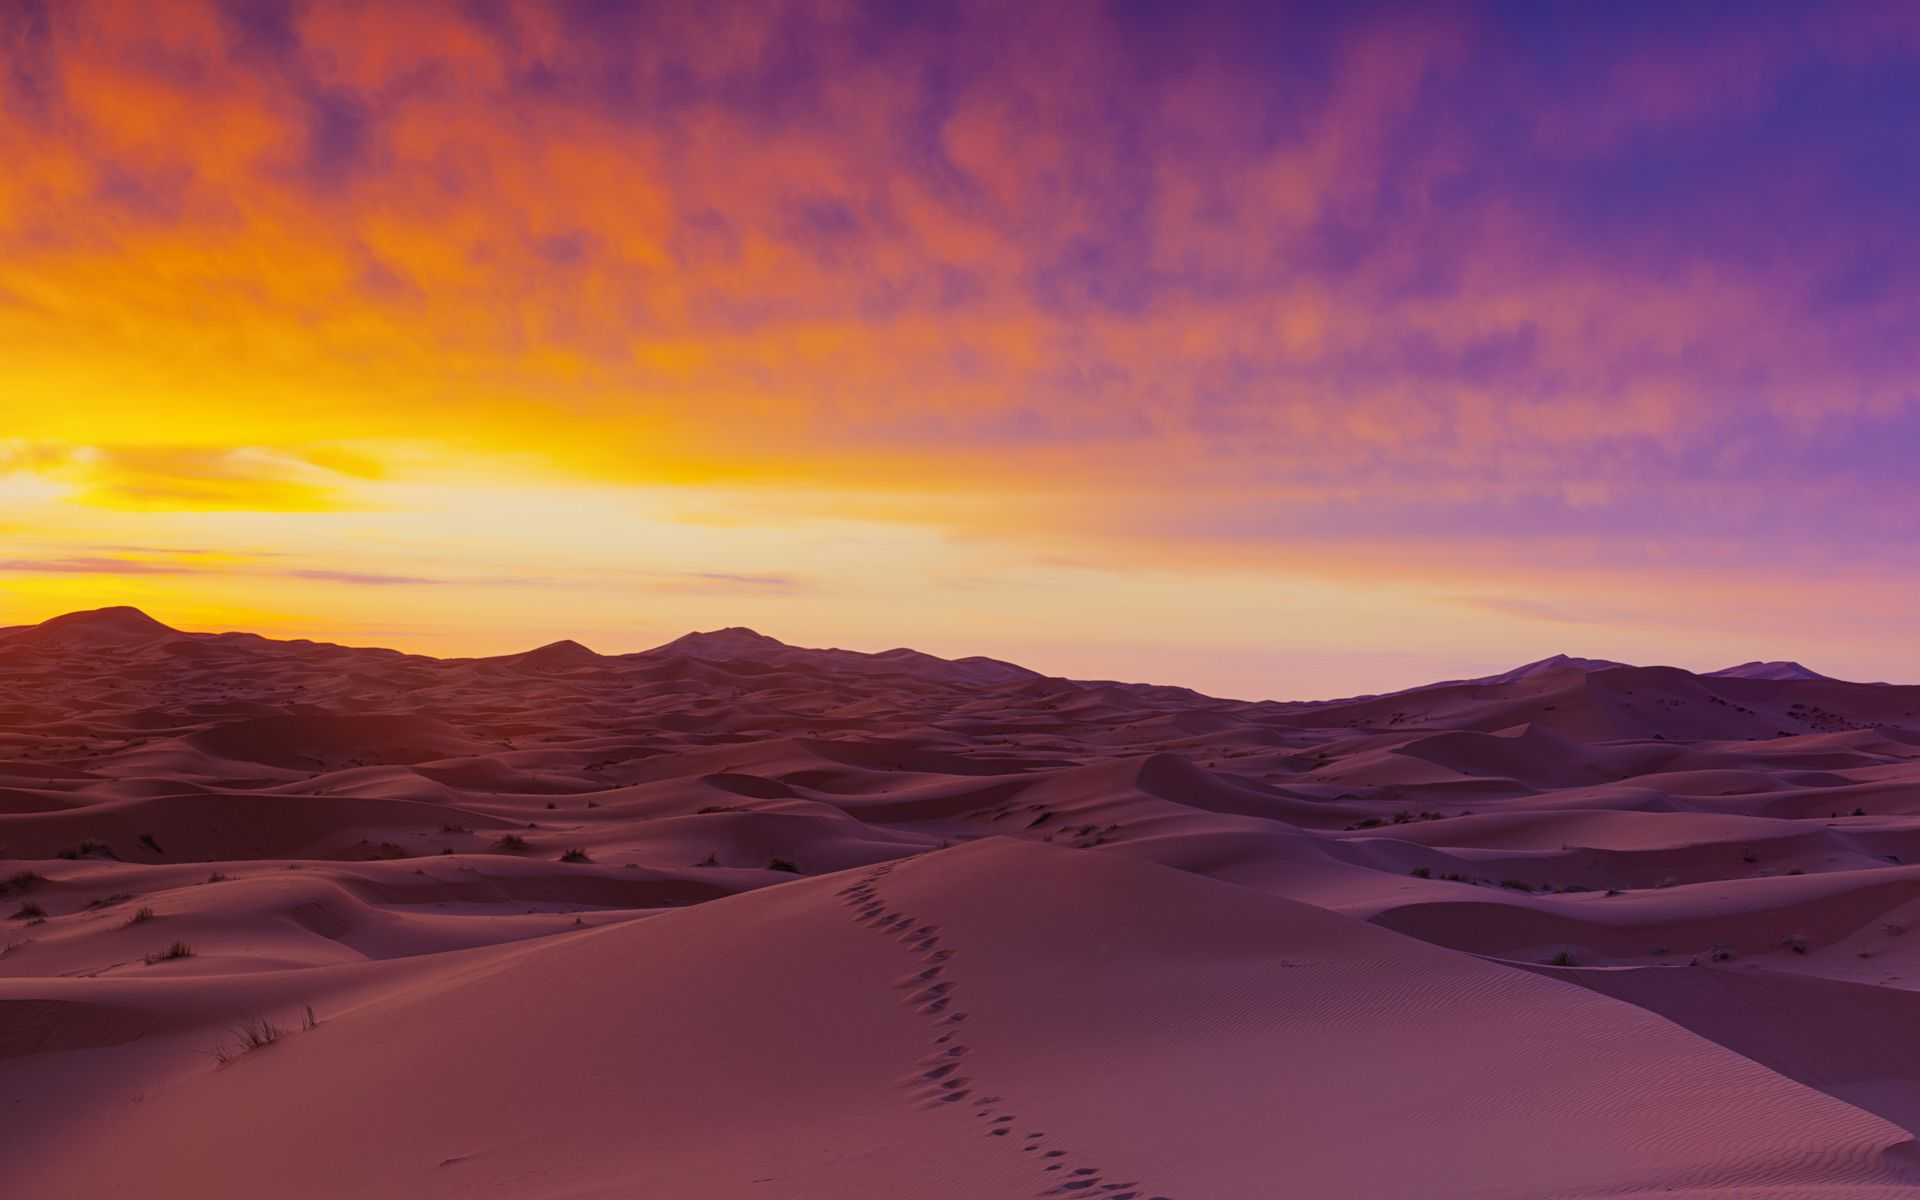 Download Sahara Desert Sand Wallpaper Free By udhao.net ...